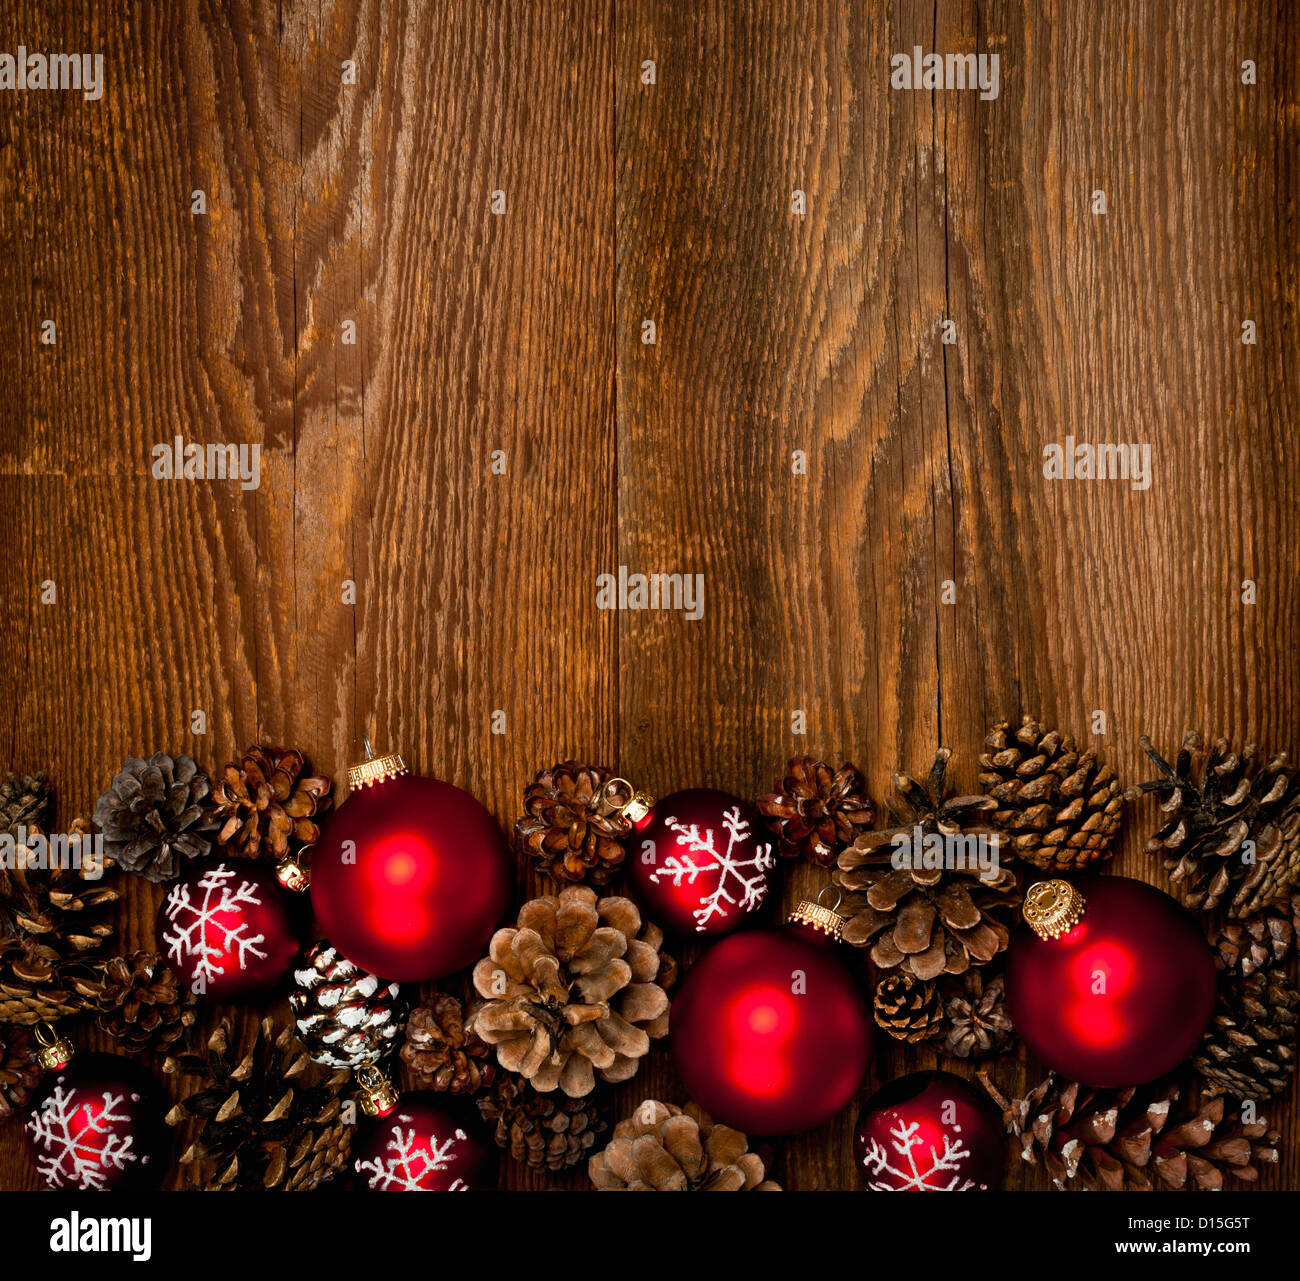 Rustic wood background with Christmas ornaments and pine cones ...